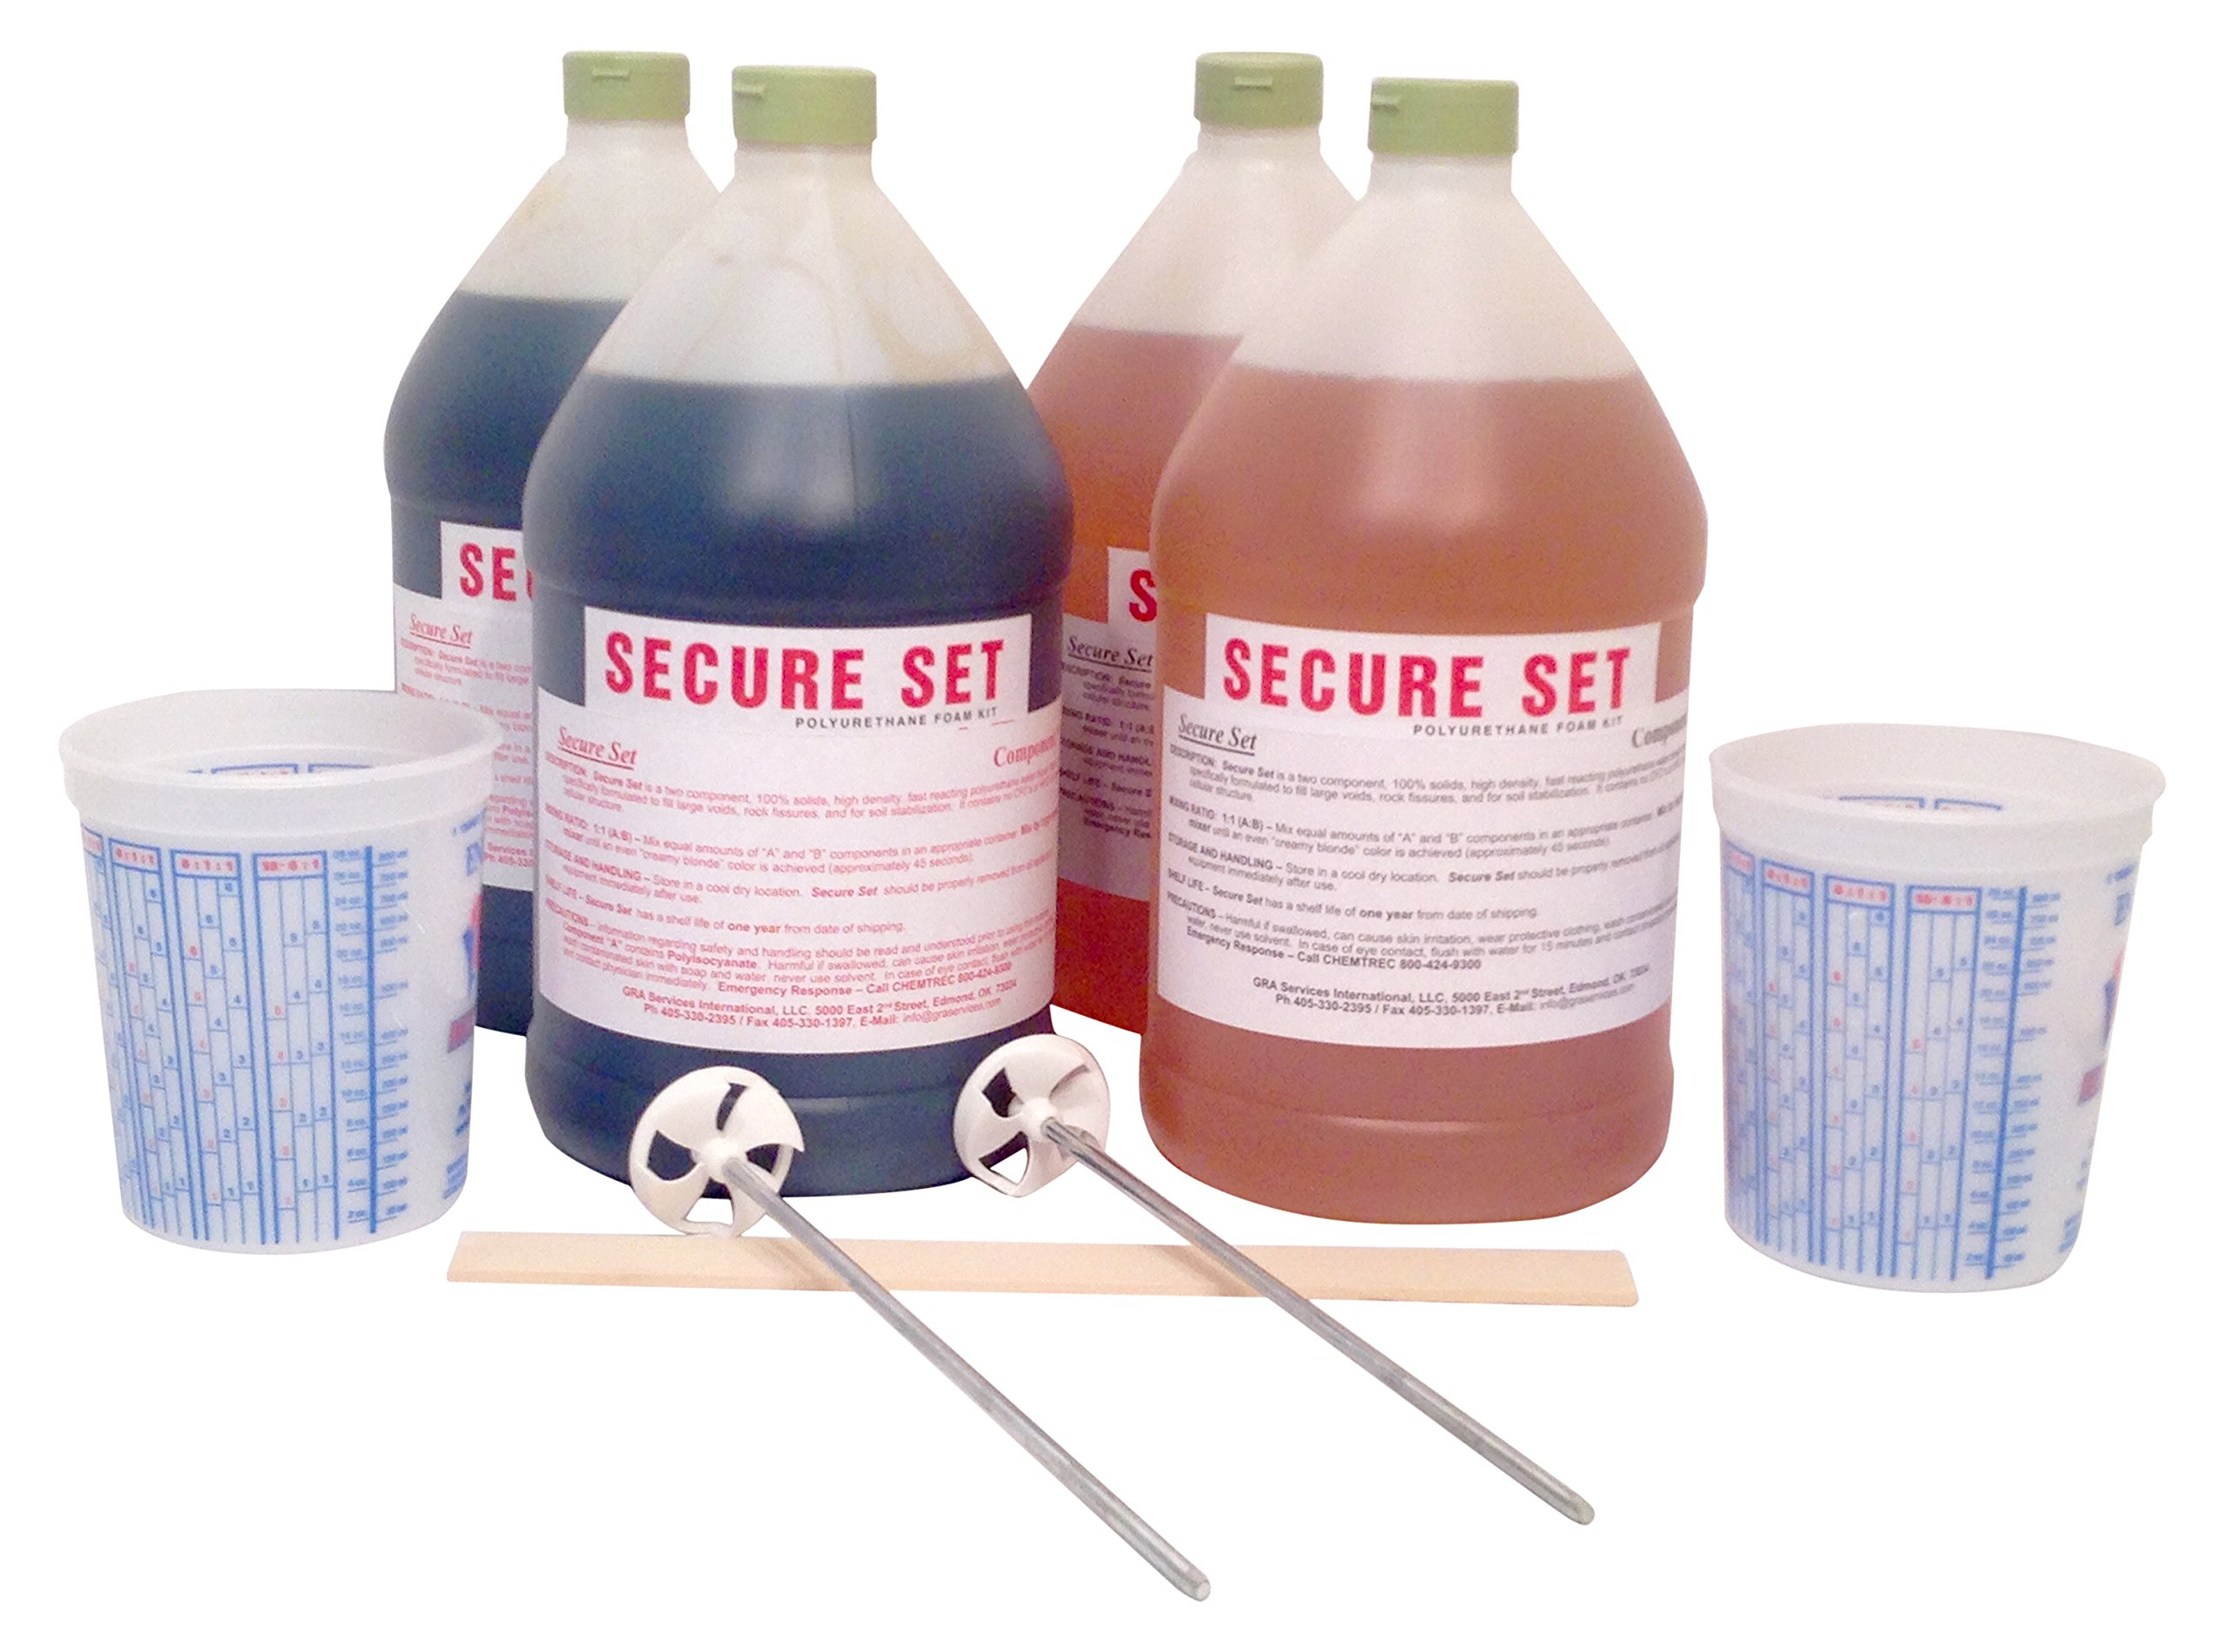 Secure Set - 20 Post Kit. Fast, Secure & Safe Concrete Alternative for Easy Fence Post Installation. Industrial Strength - Size: 4 Gallon